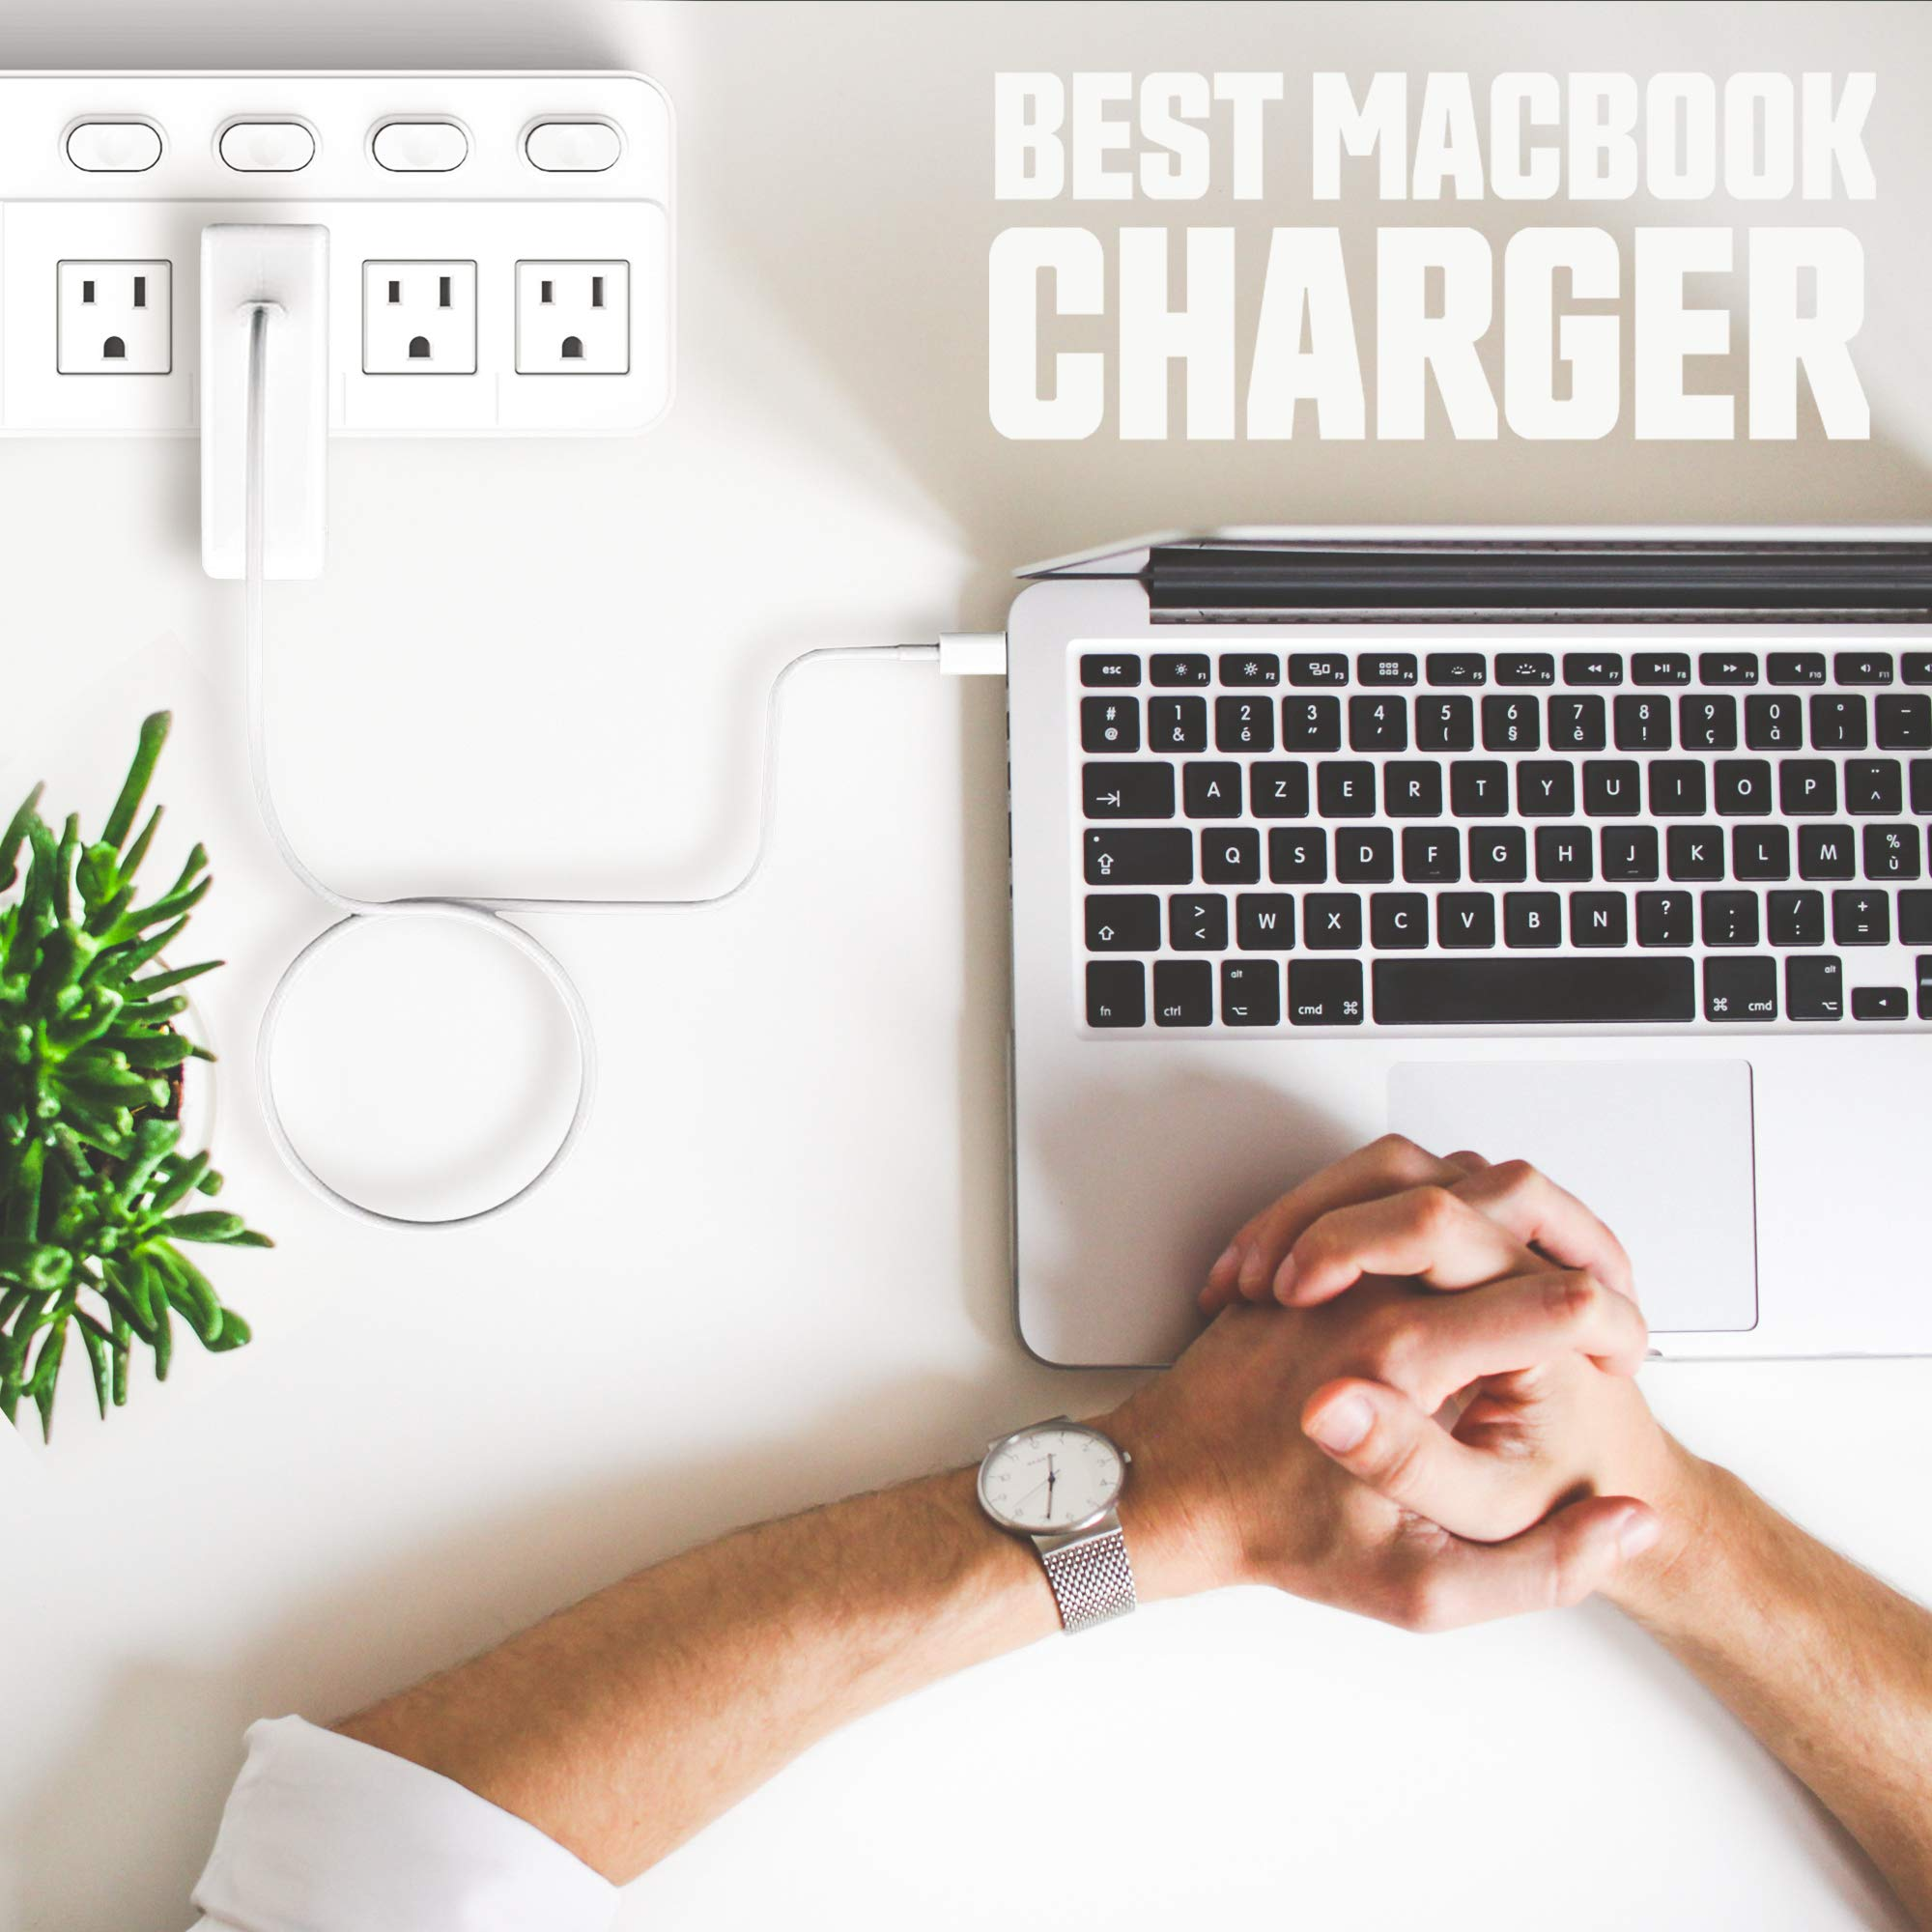 GSNOW 87W USB-C Power Adapter Charger - Compatible with MacBook Pro 15 Inch Laptop - with USB-C to USB-C Charge Cable (White) by GSNOW (Image #5)